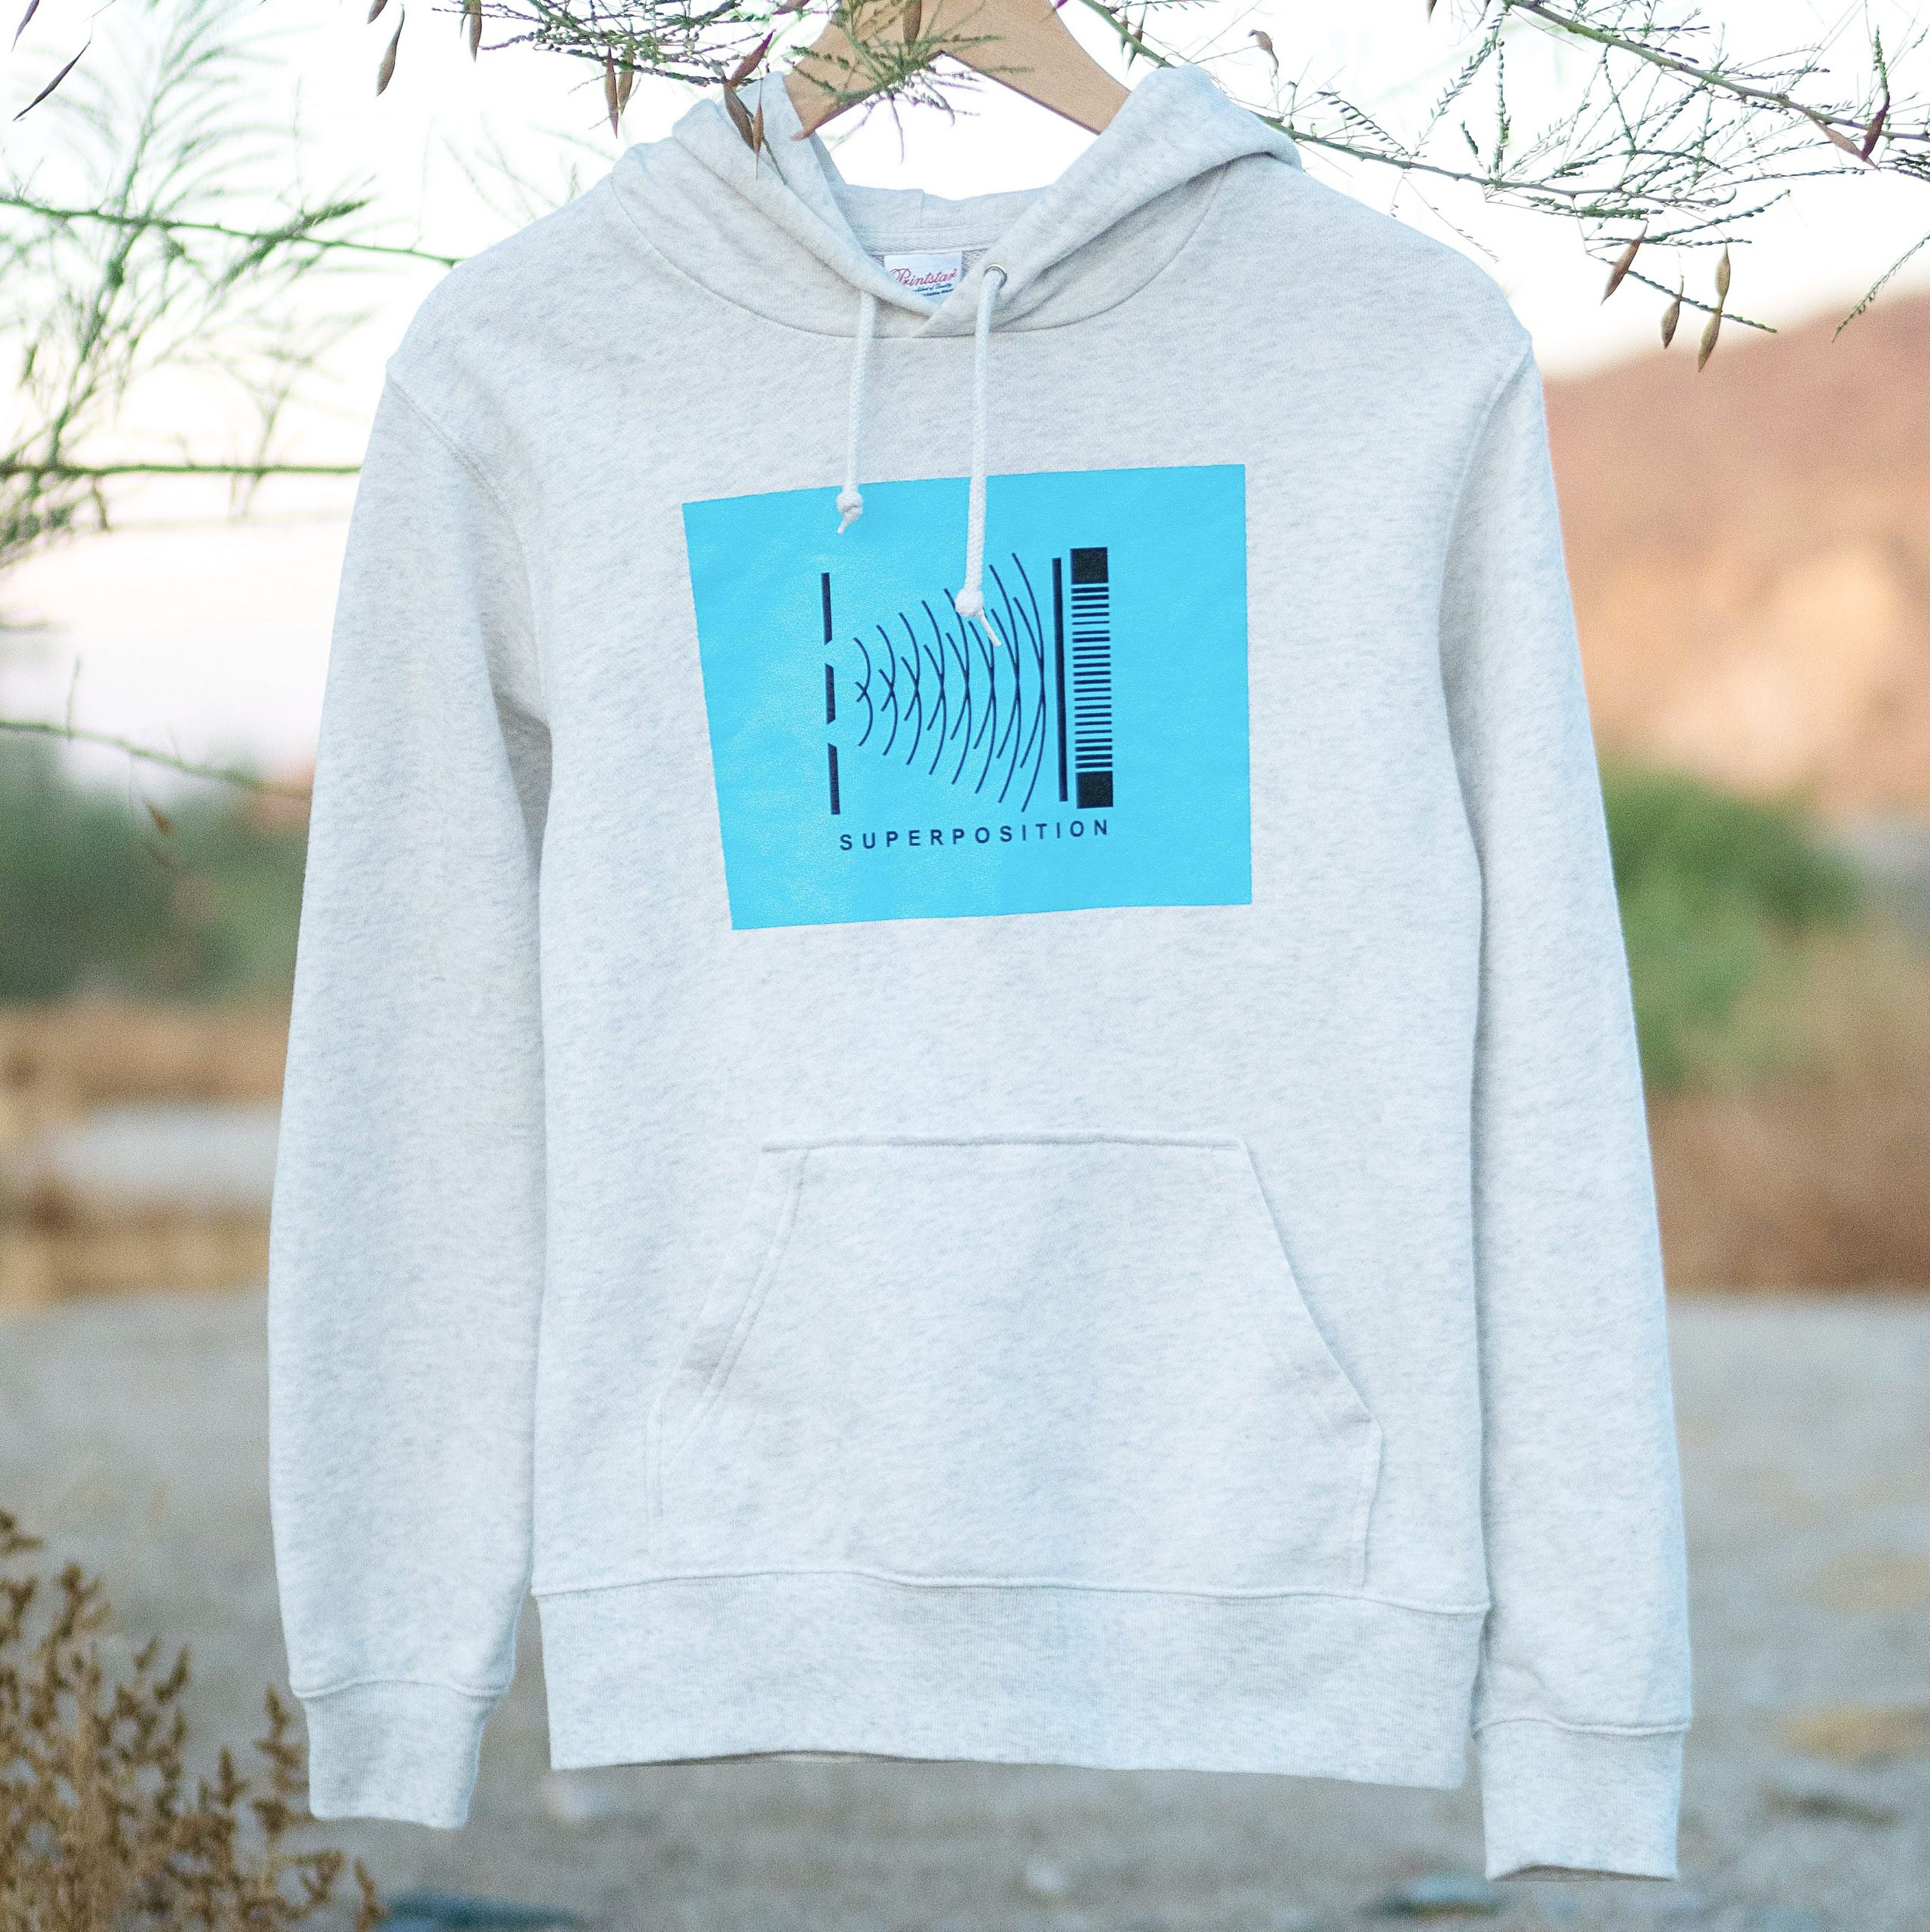 Superposition Hoodie | 重ね合わせ パーカー